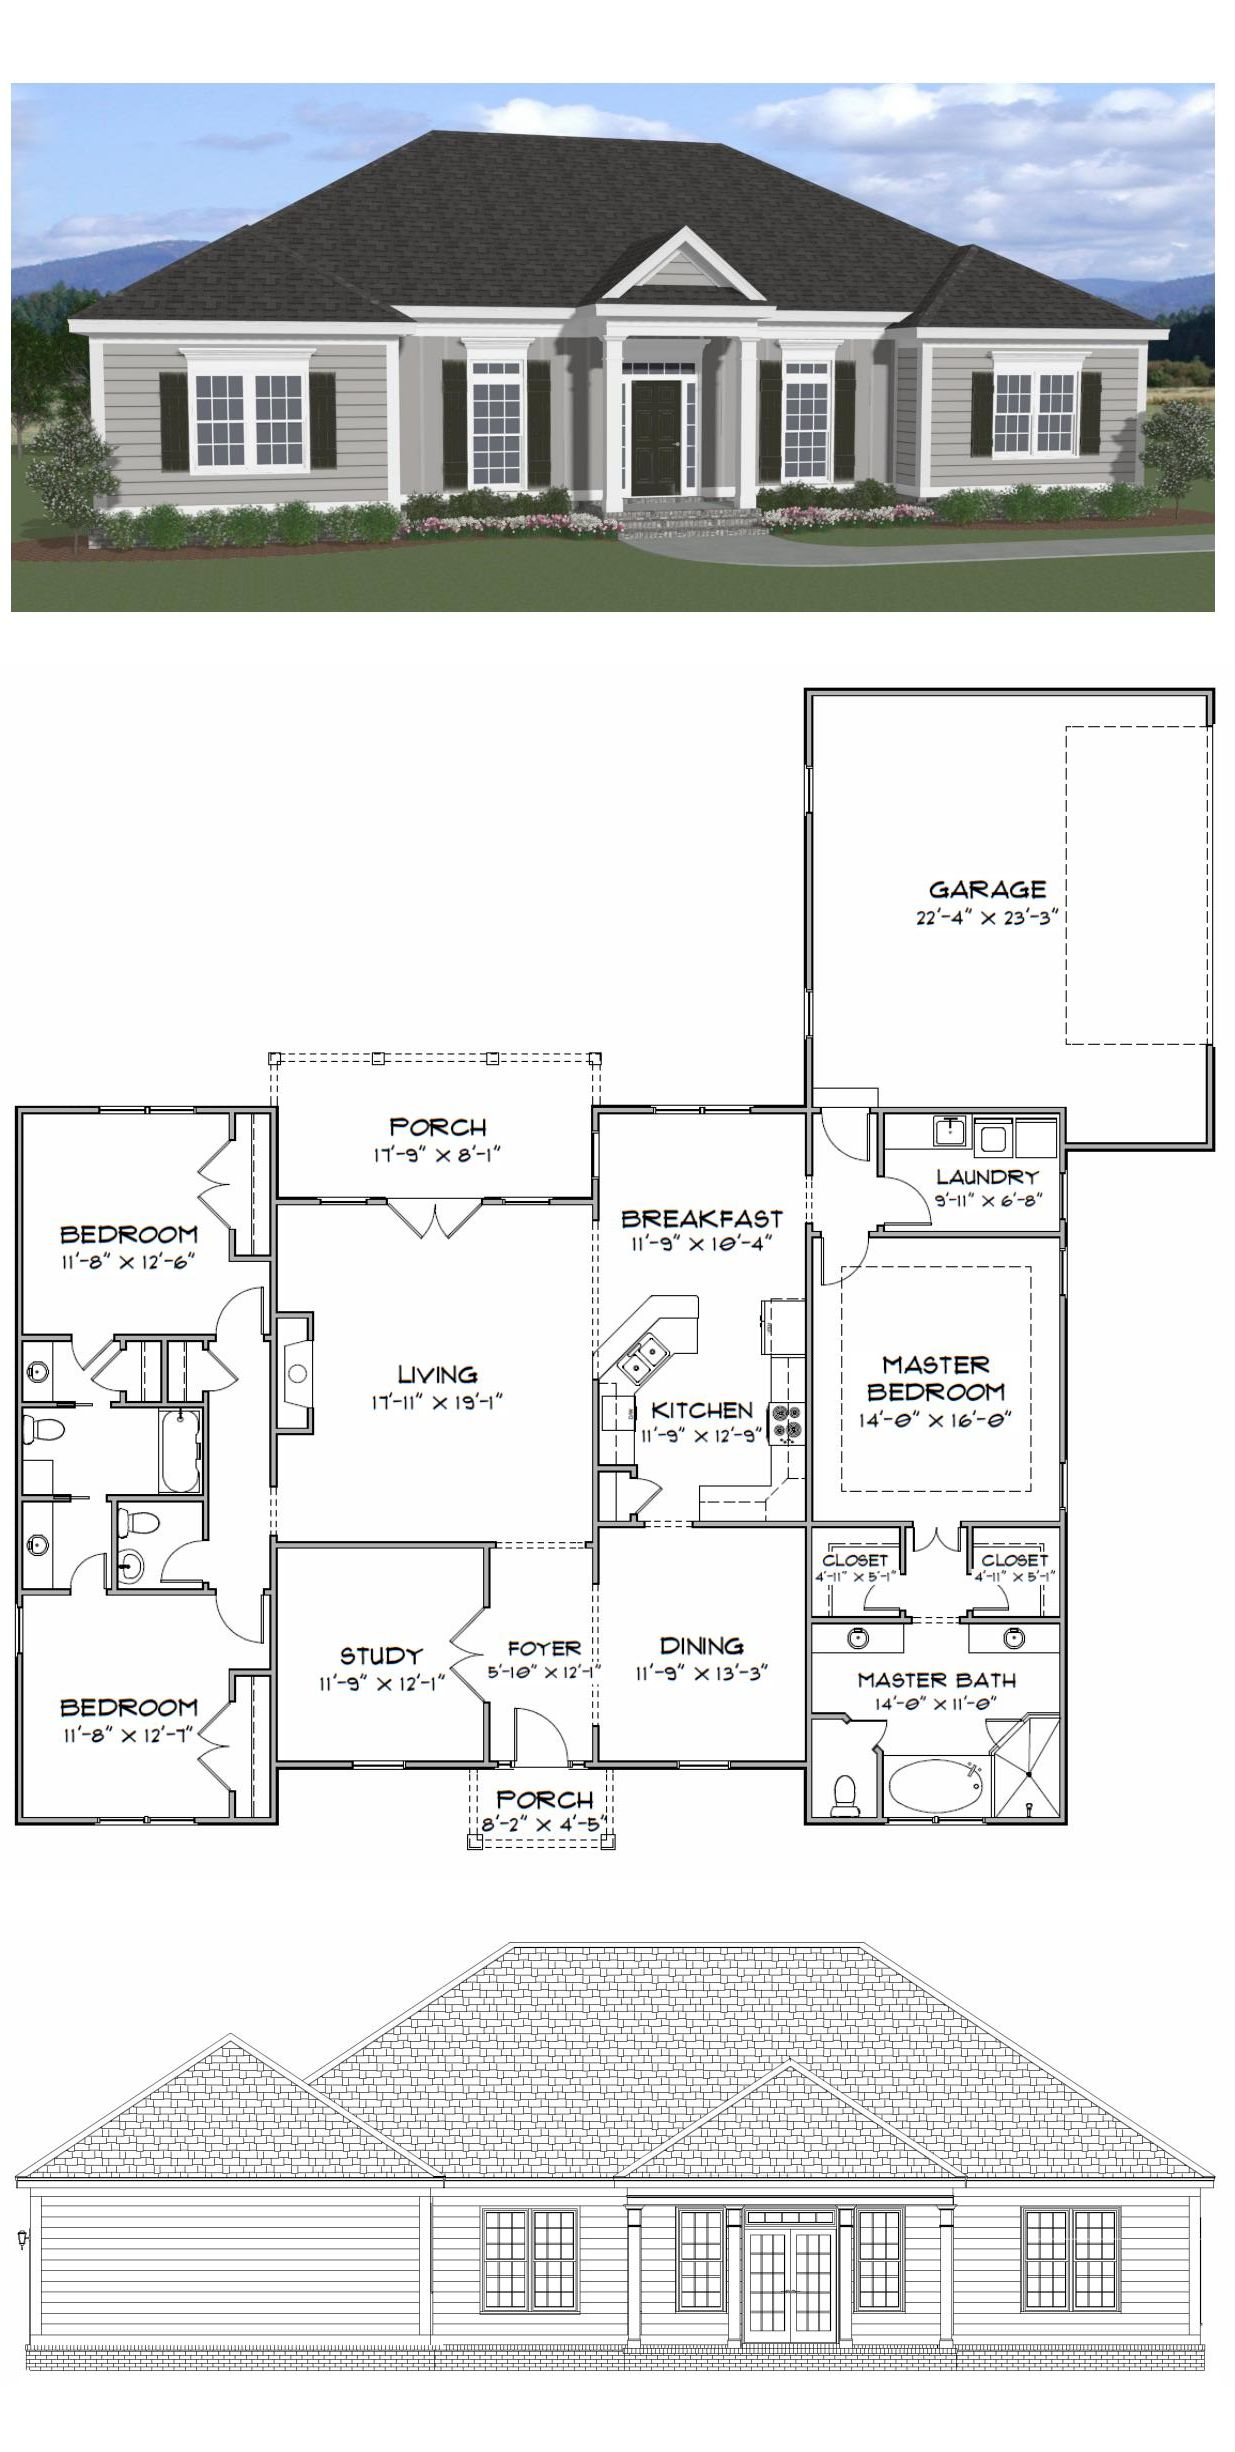 Plan Sc  Bedroom 2 5 Bath Home With A Study The Home Has 2216 Heated Square Feet This Home Plan Is Available For Purchase Online Along With